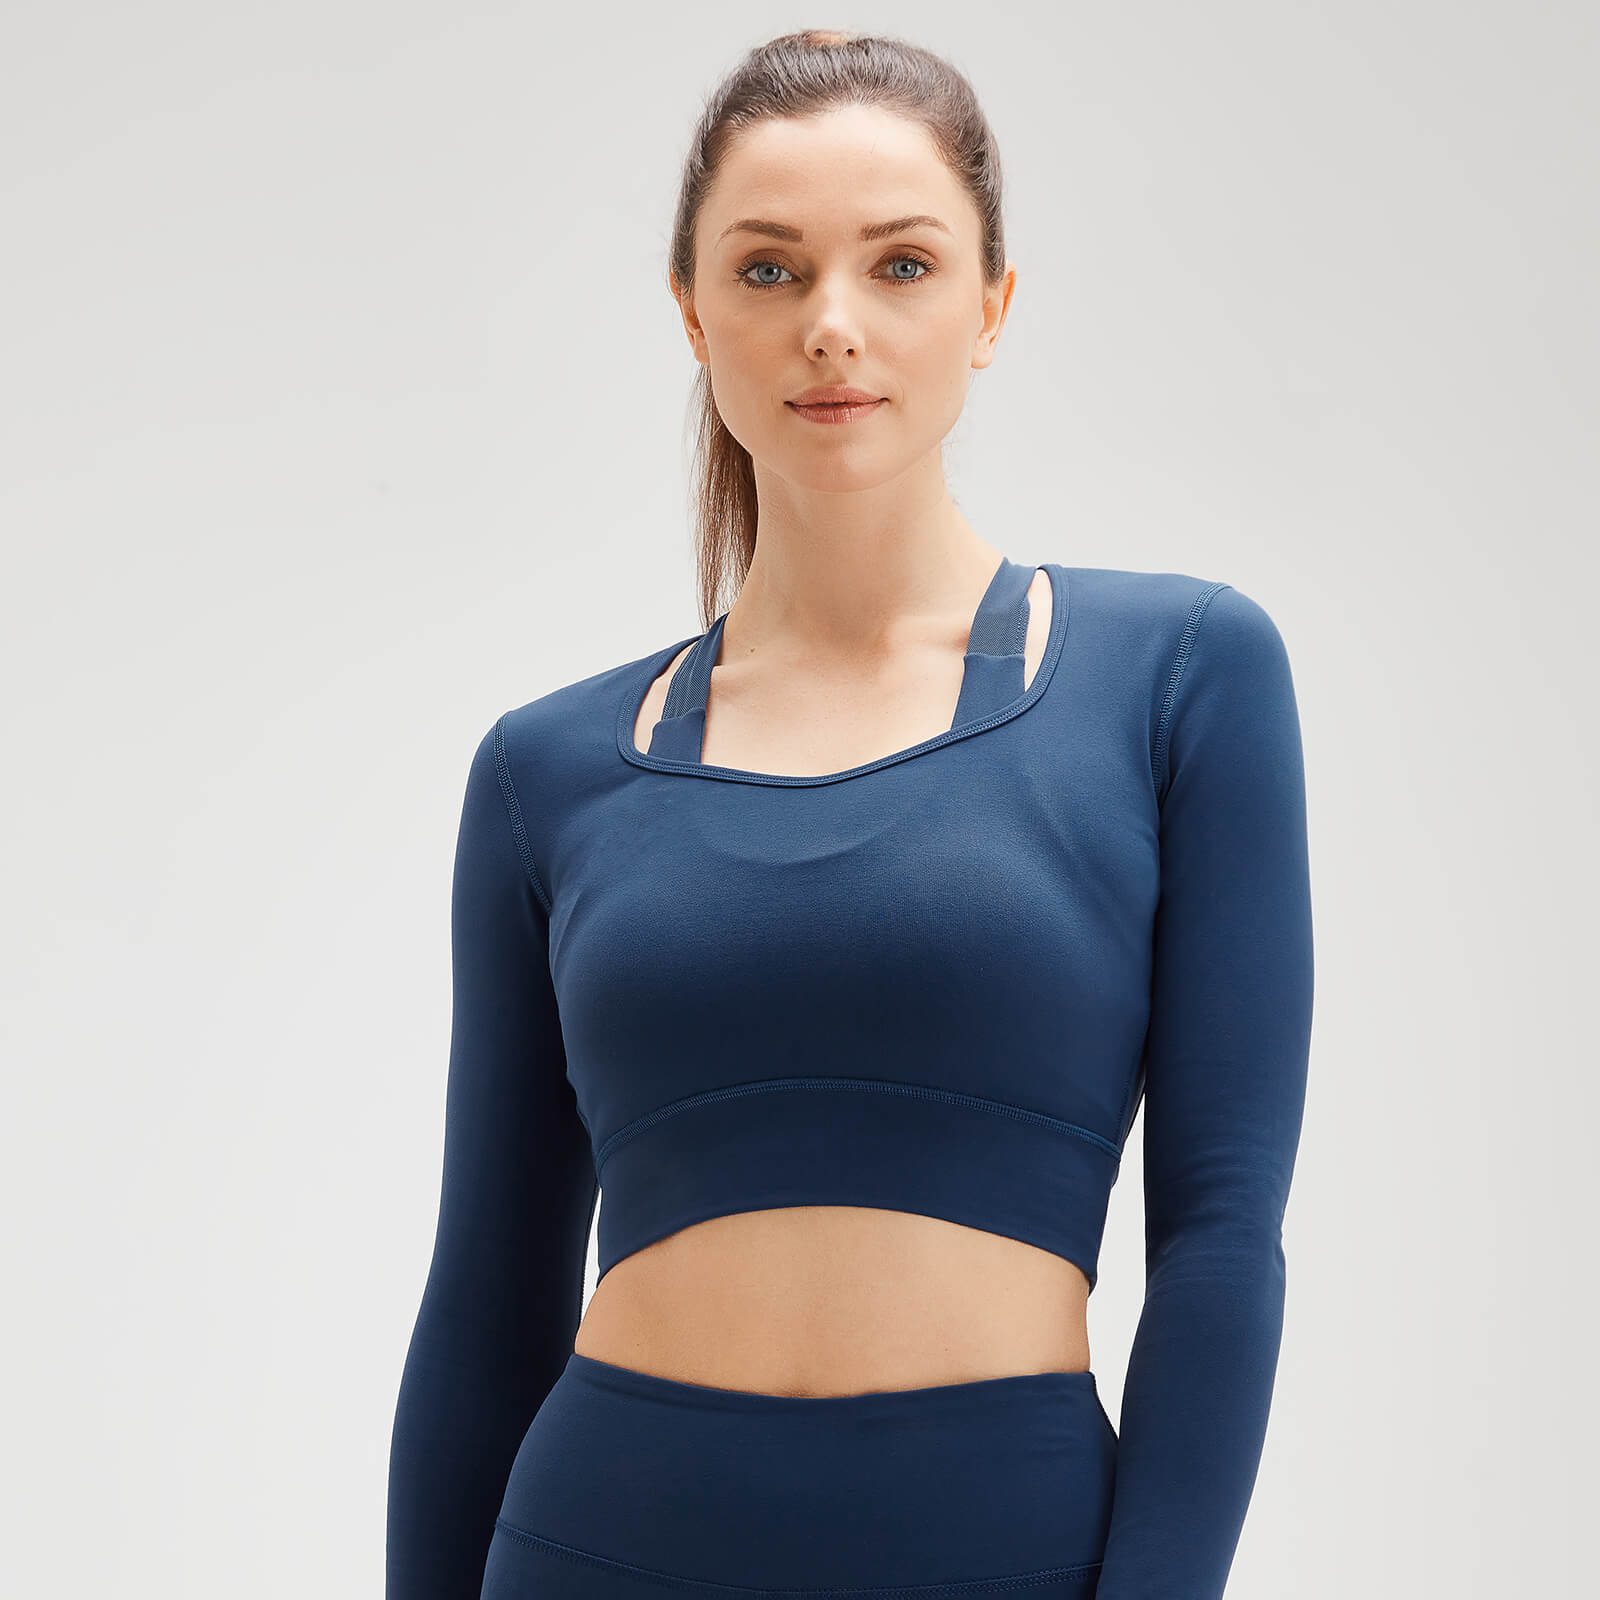 MP Women's Power Open Back Crop Top - Dark Blue - XXS